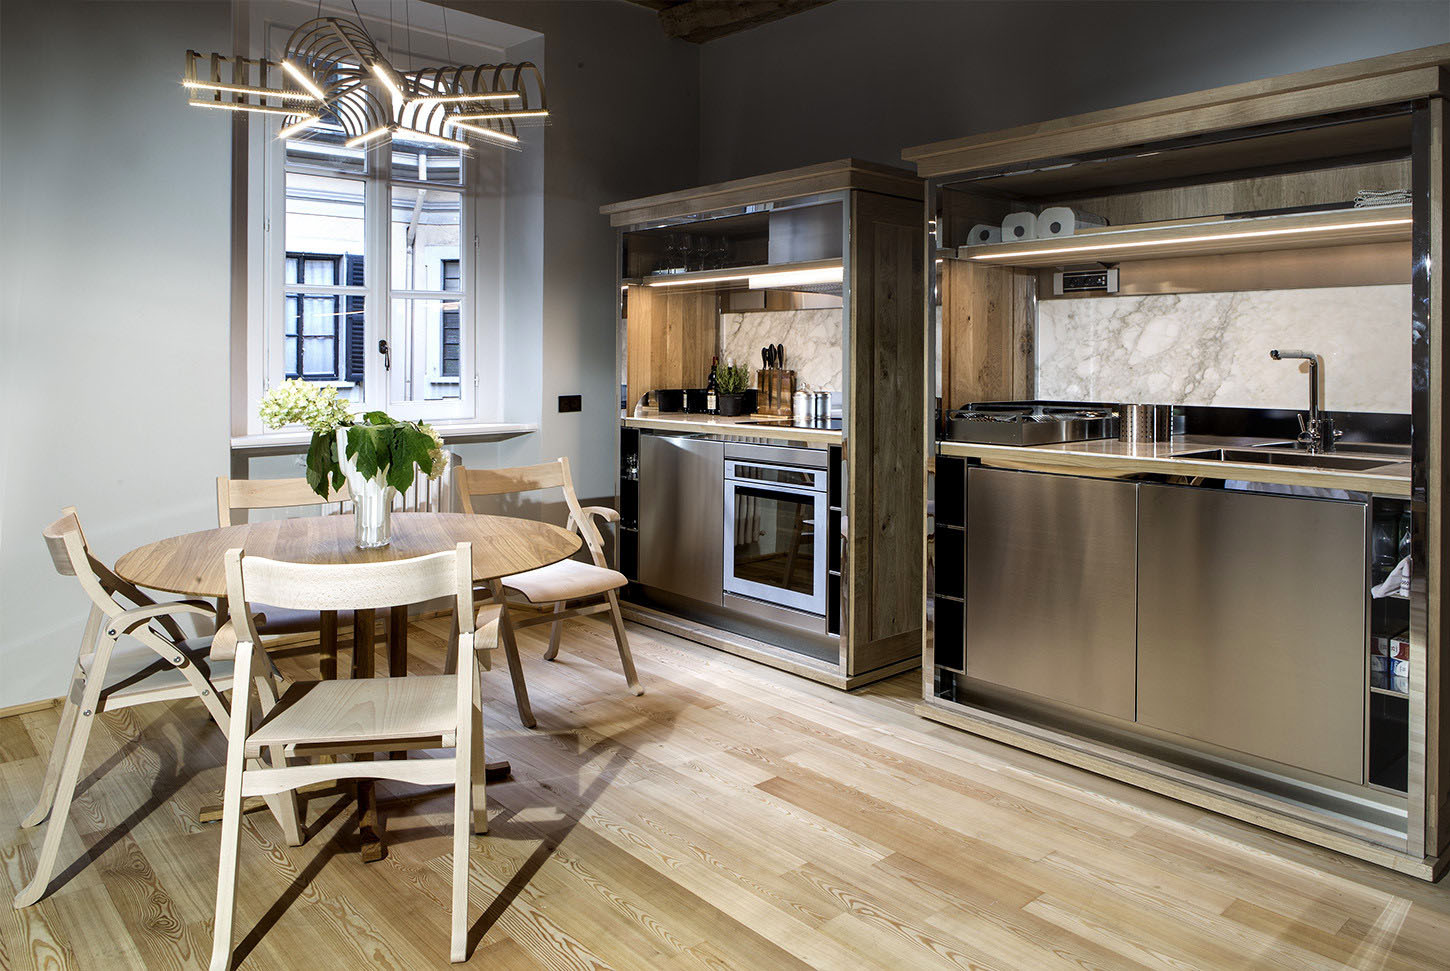 Modern Kitchen In Old House Welcoming Modern Apartment In An Old Milan Building Idesignarch